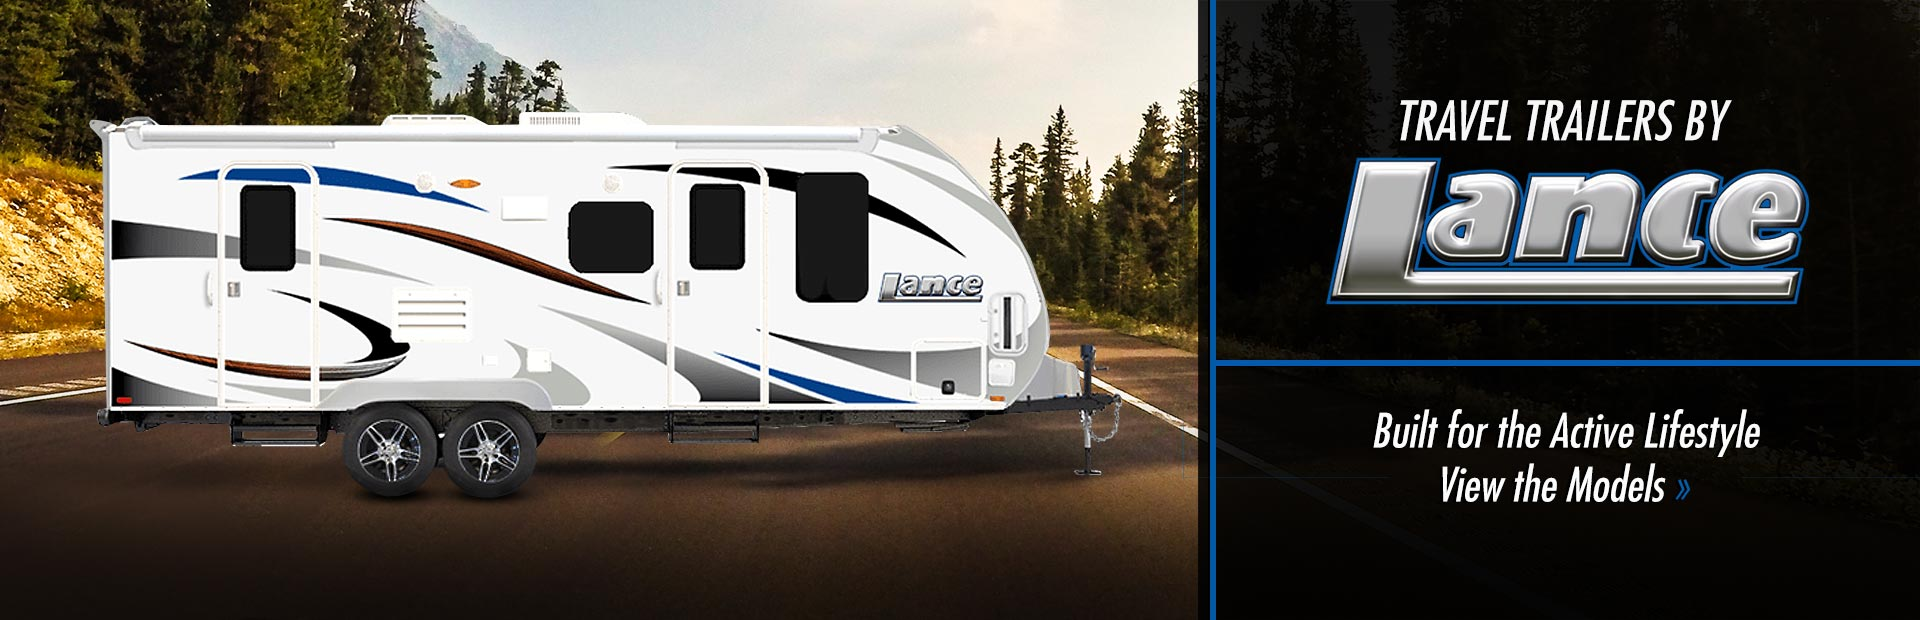 Travel Trailers by Lance: Click here to view the models.